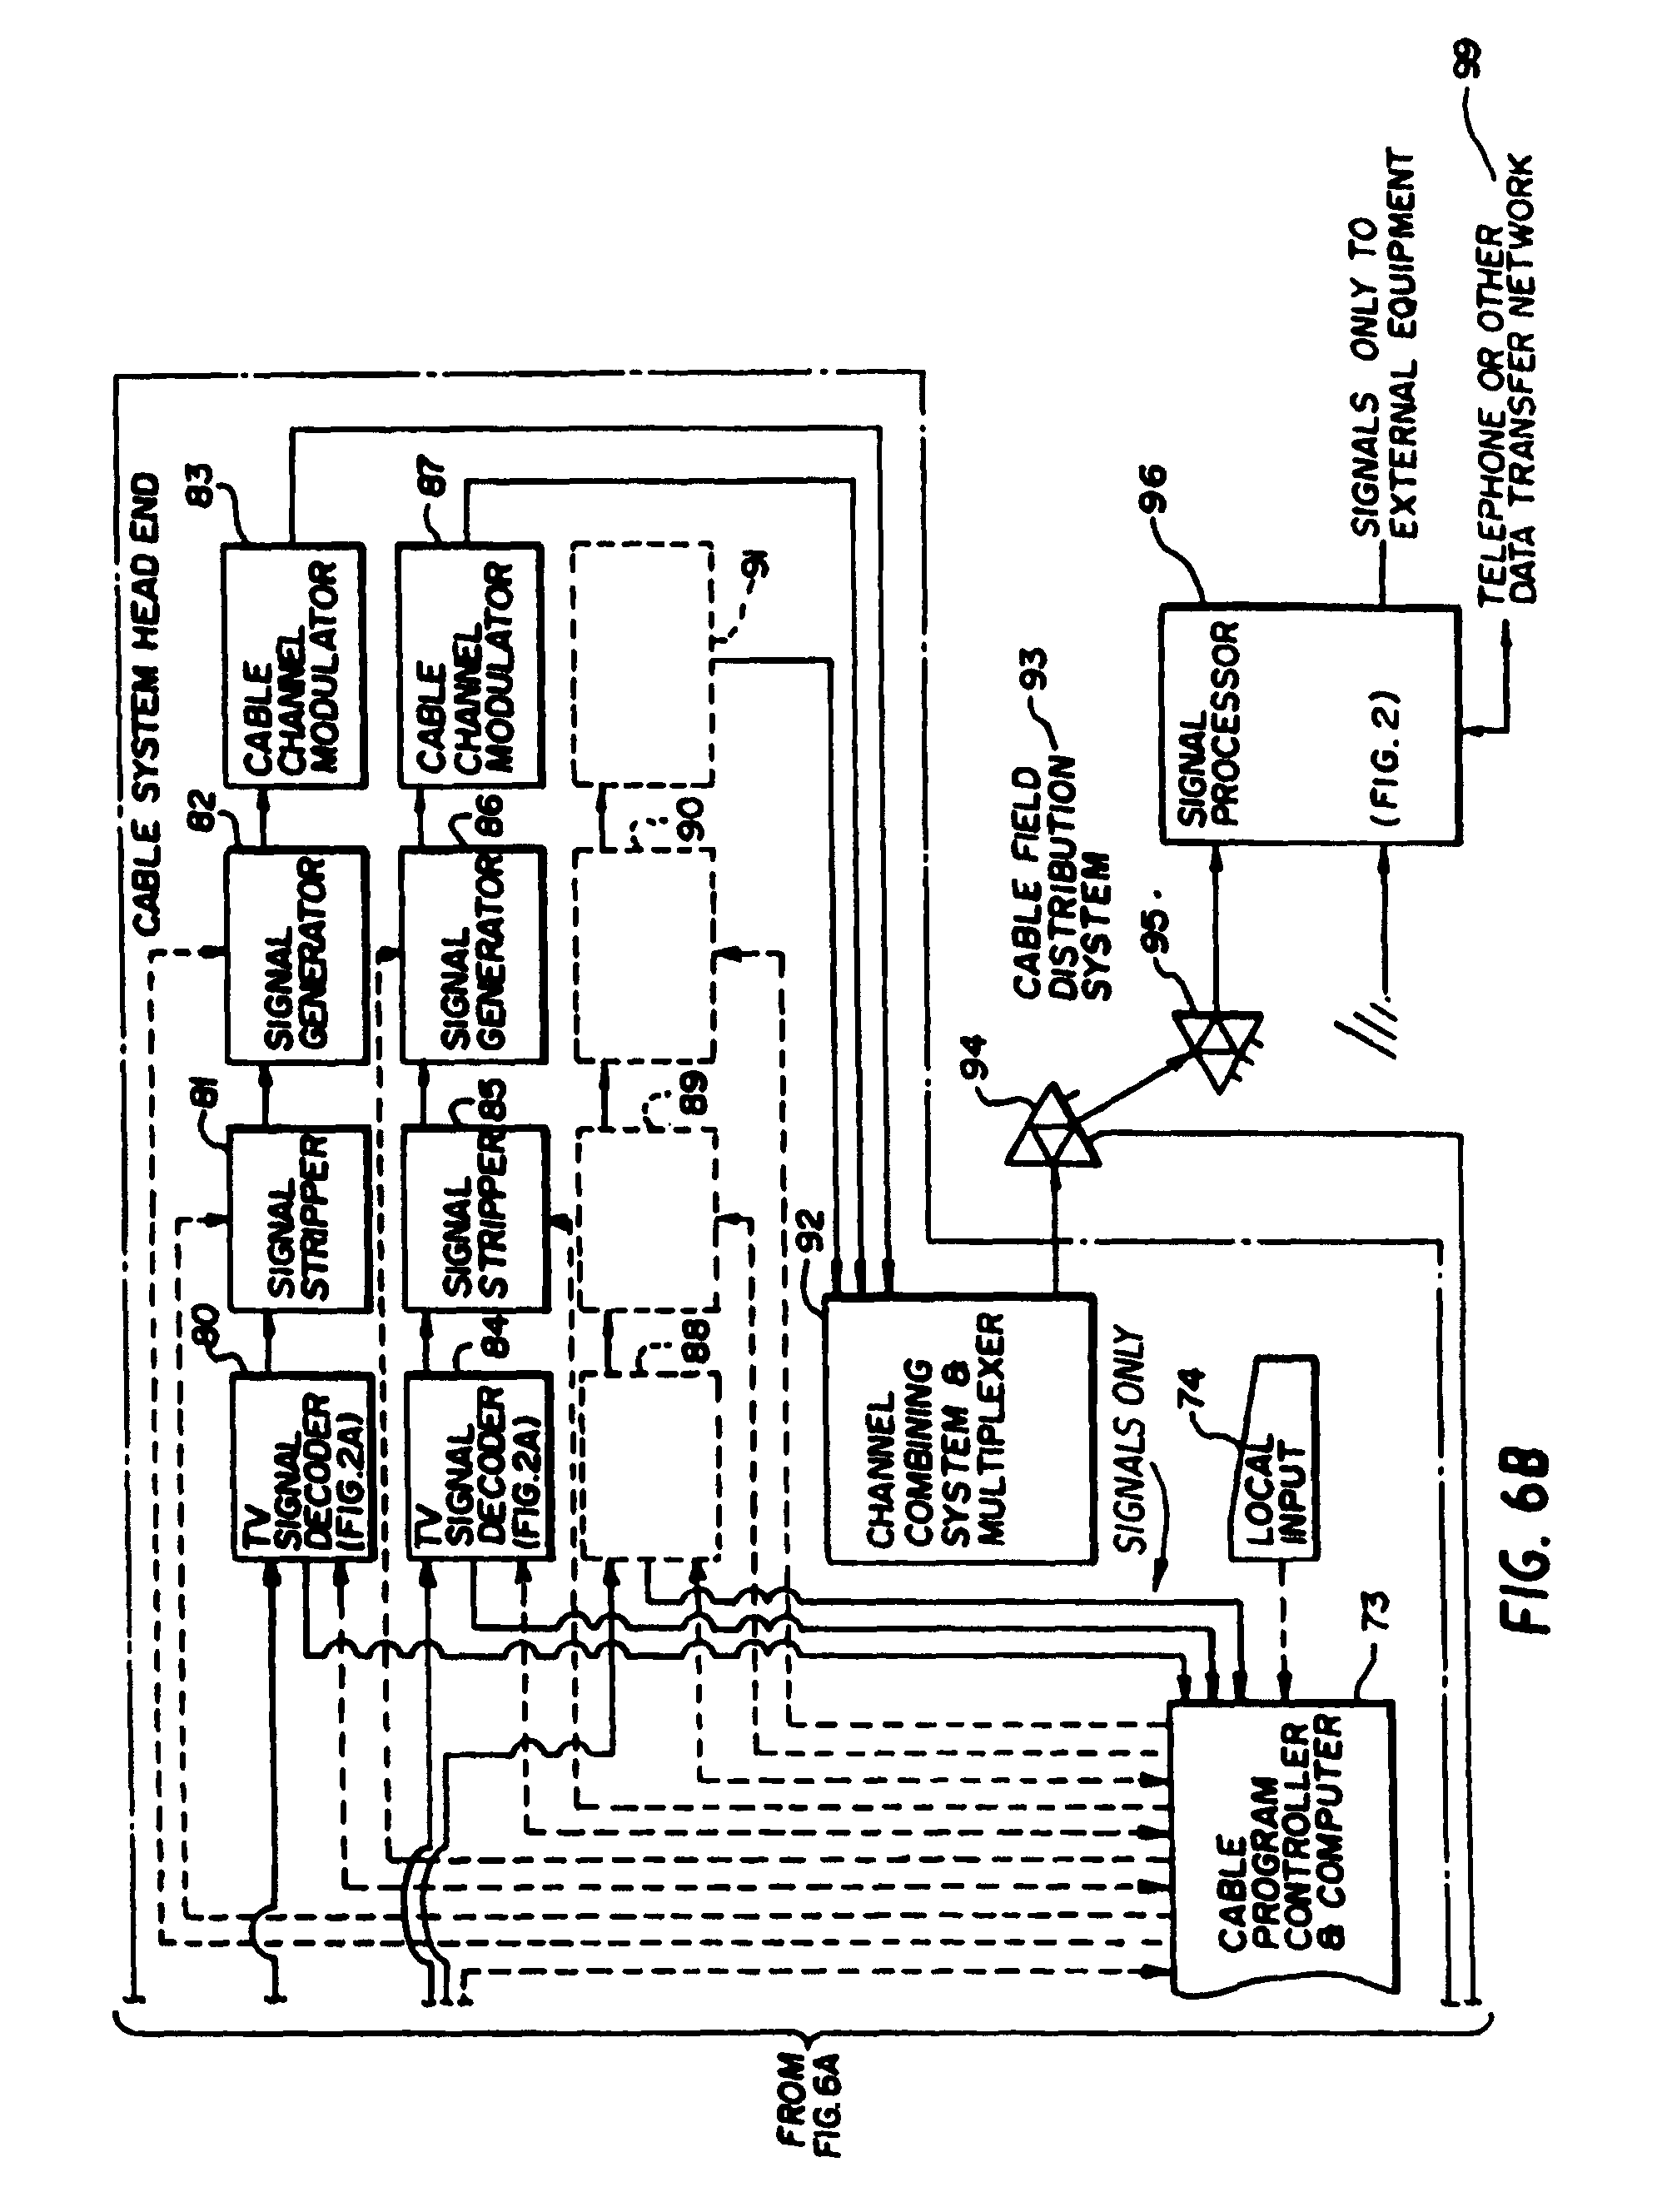 Us7793332b1 Signal Processing Apparatus And Methods Google Patents Wiring Gt Tools For Testers Circuit Tester Hopkins